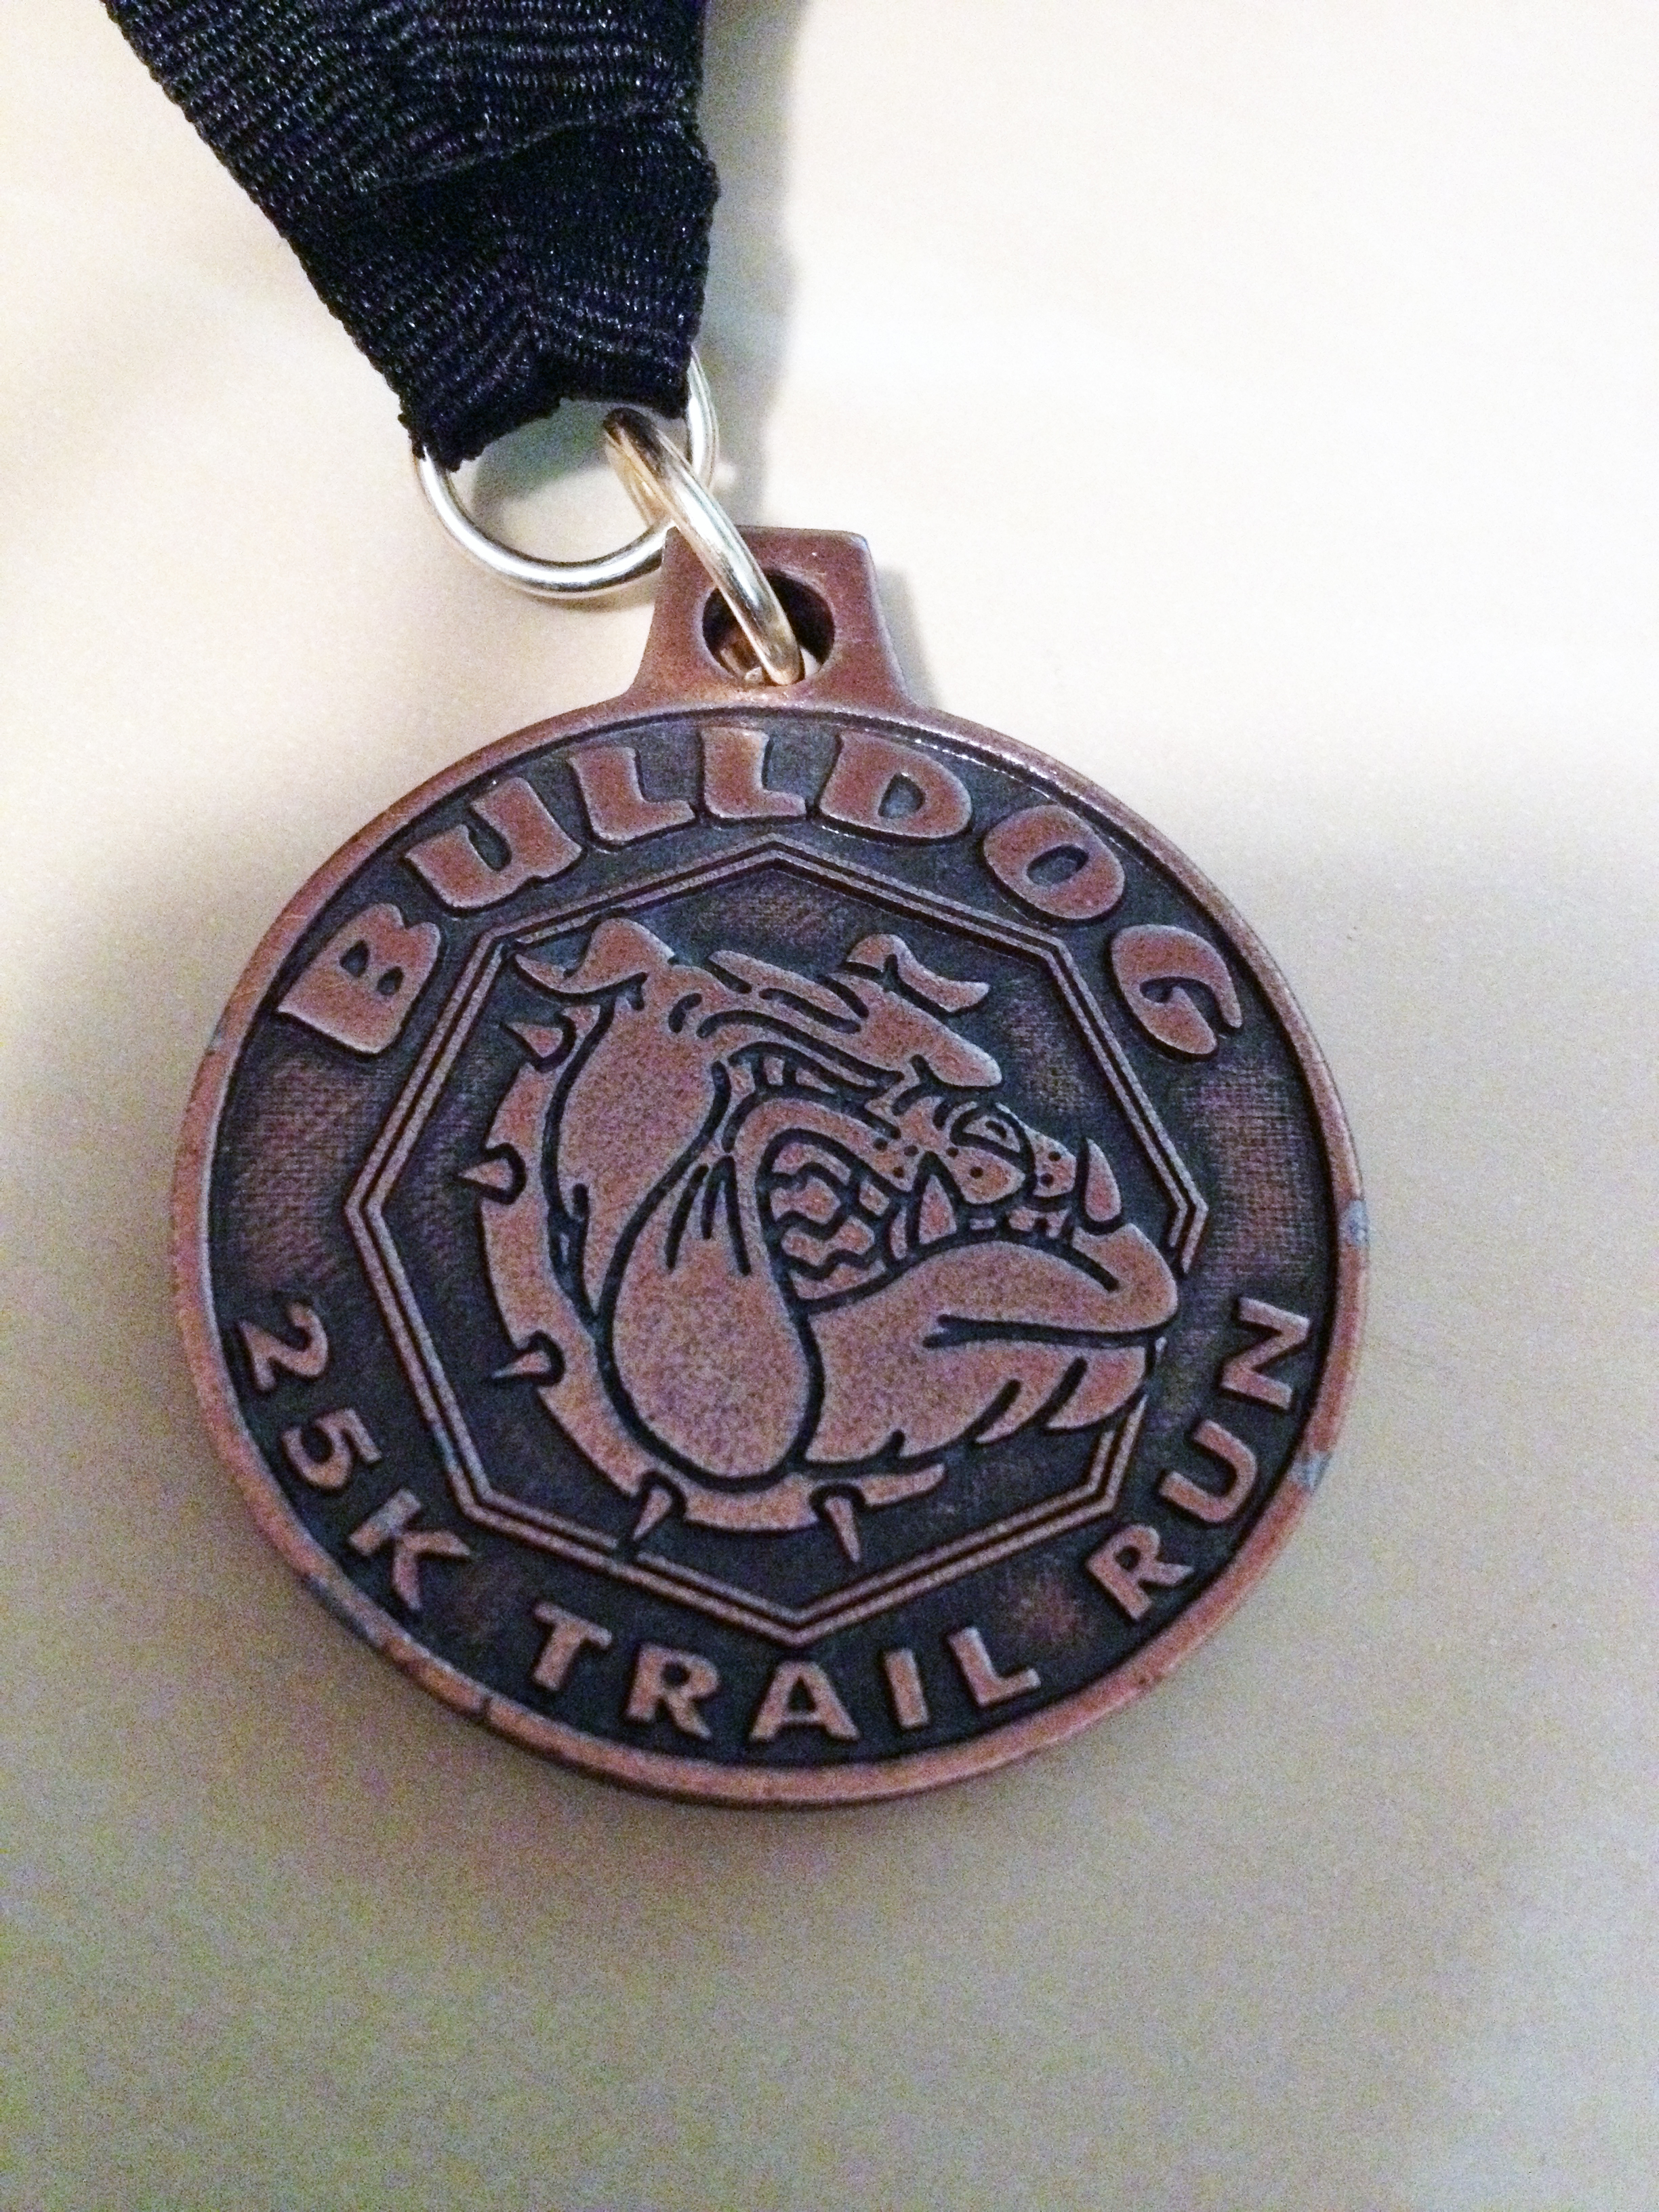 Bulldog25K finishers medal 2014